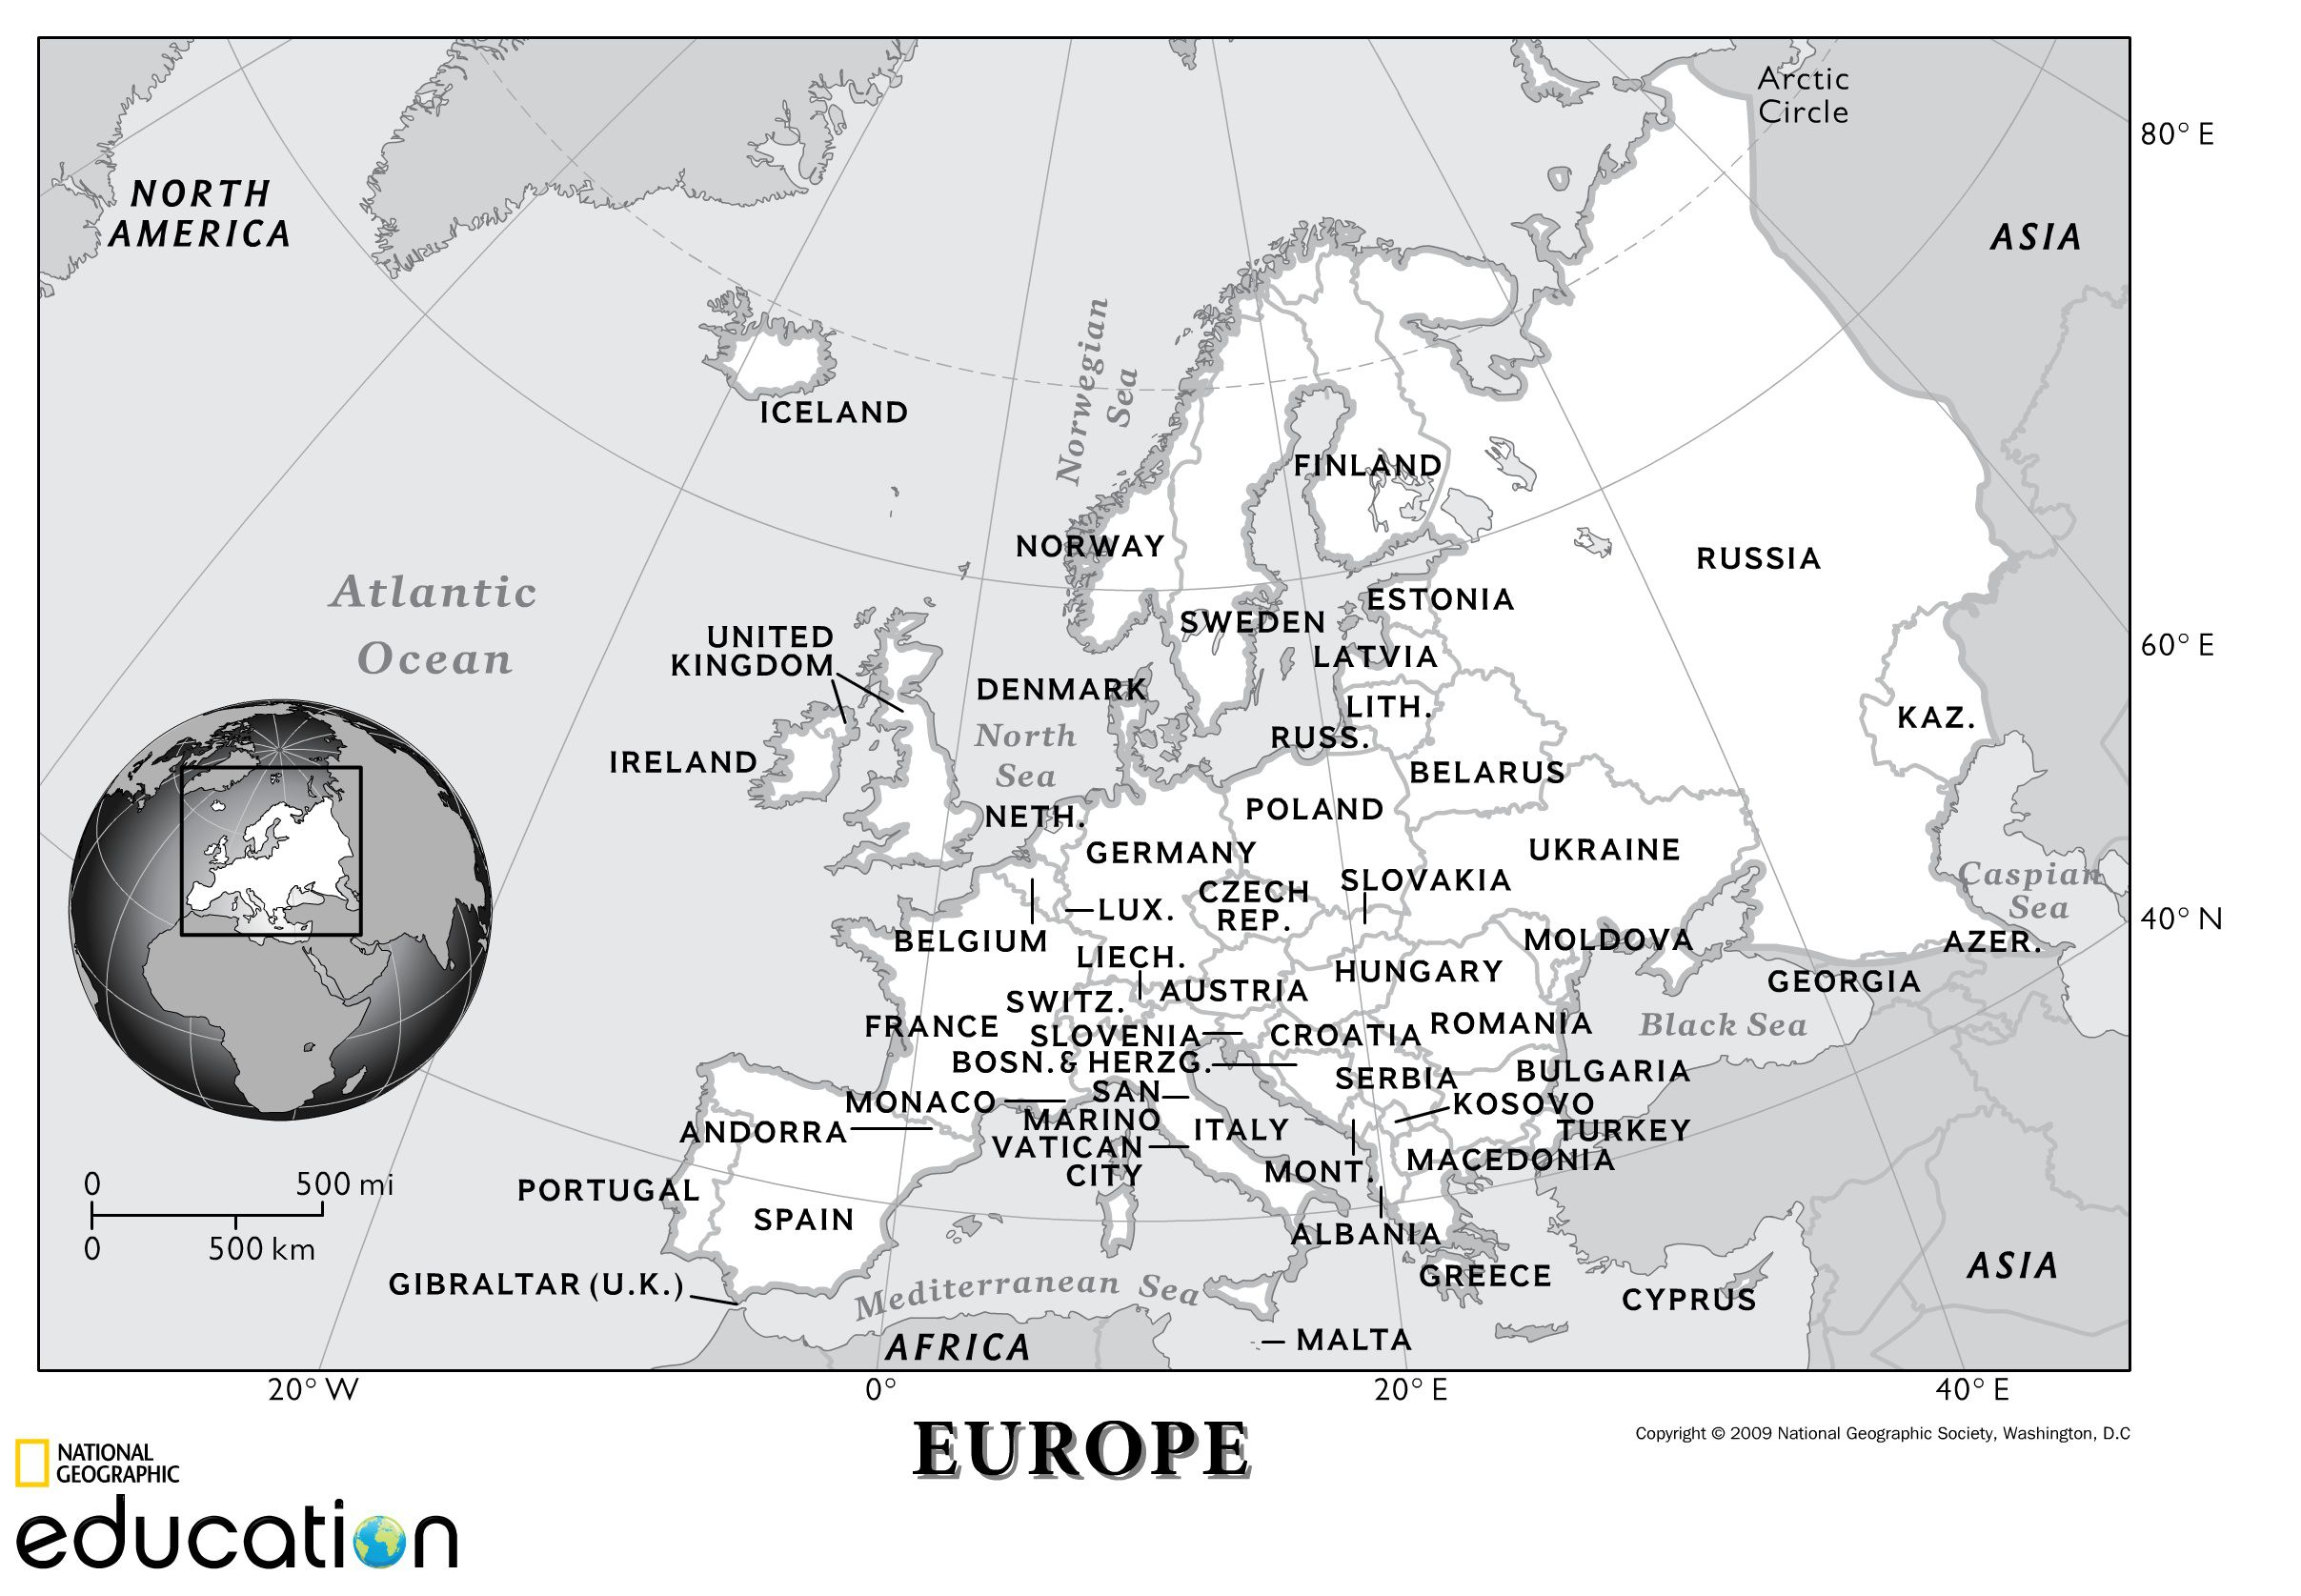 Europe: Physical Geography | National Geographic Society